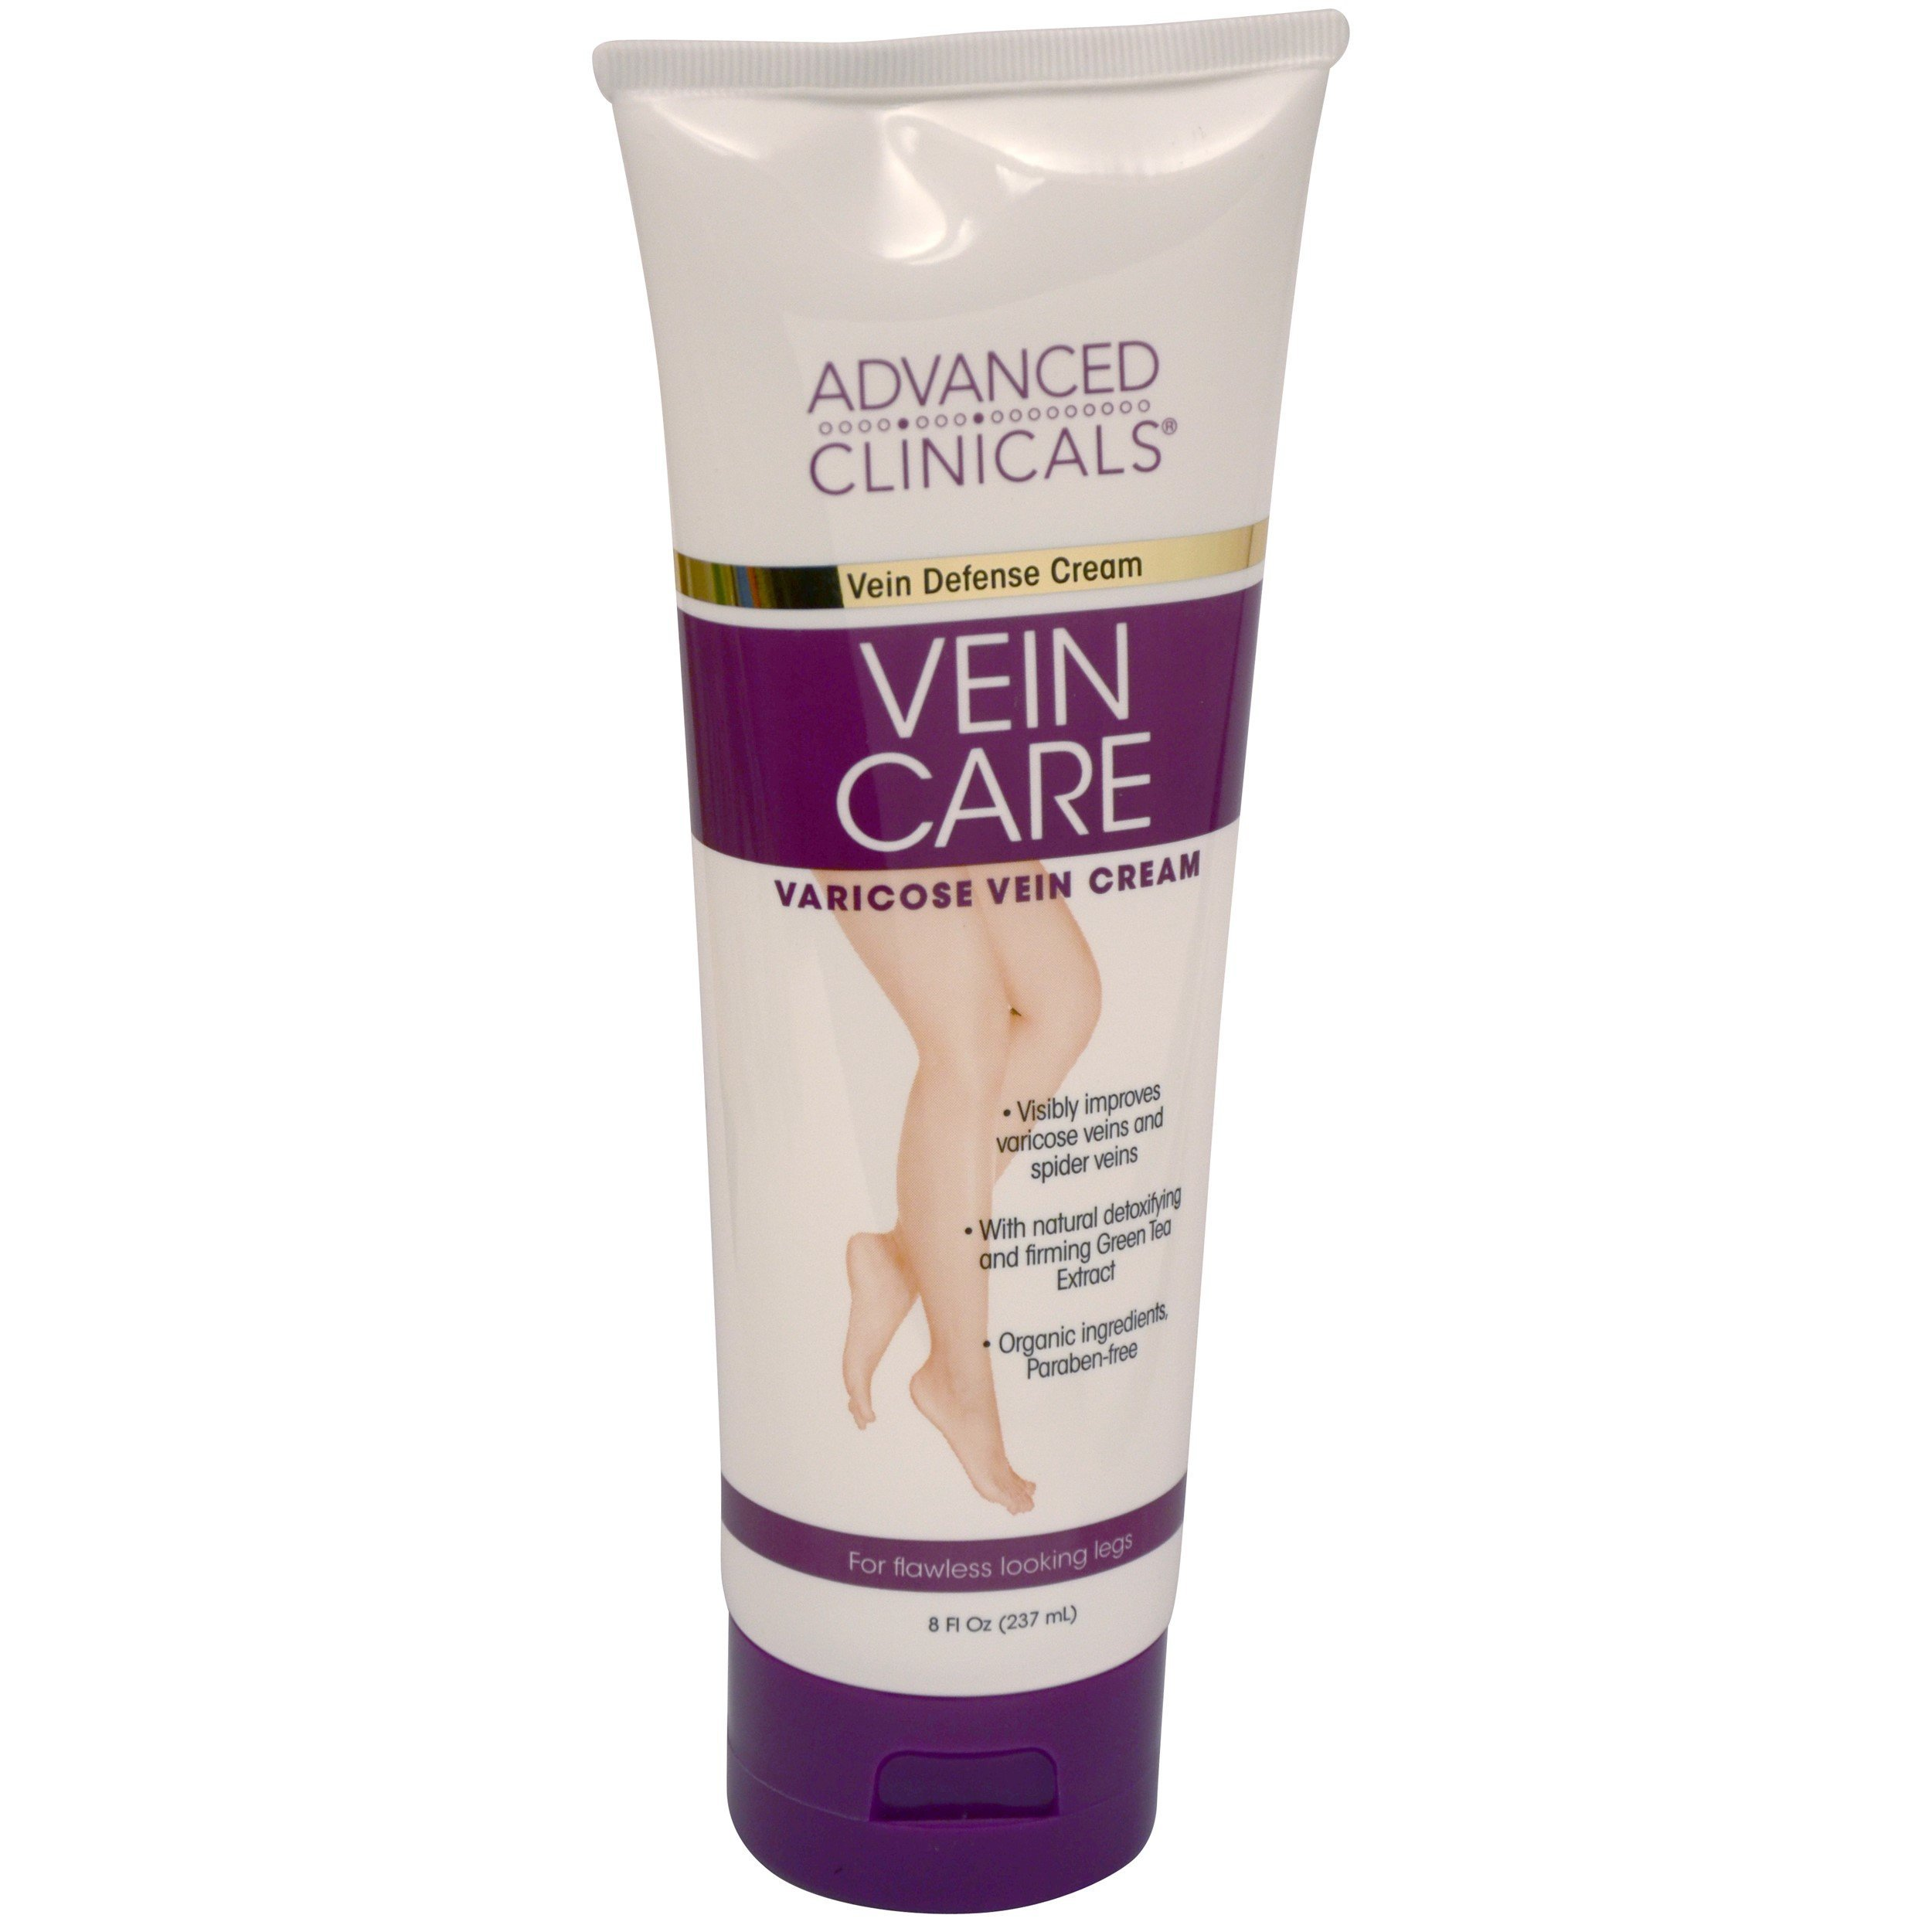 Hervorragend Advanced Clinicals Vein Care  Eliminate The Appearance Of Varicose Veins.  Spider Veins. Guaranteed